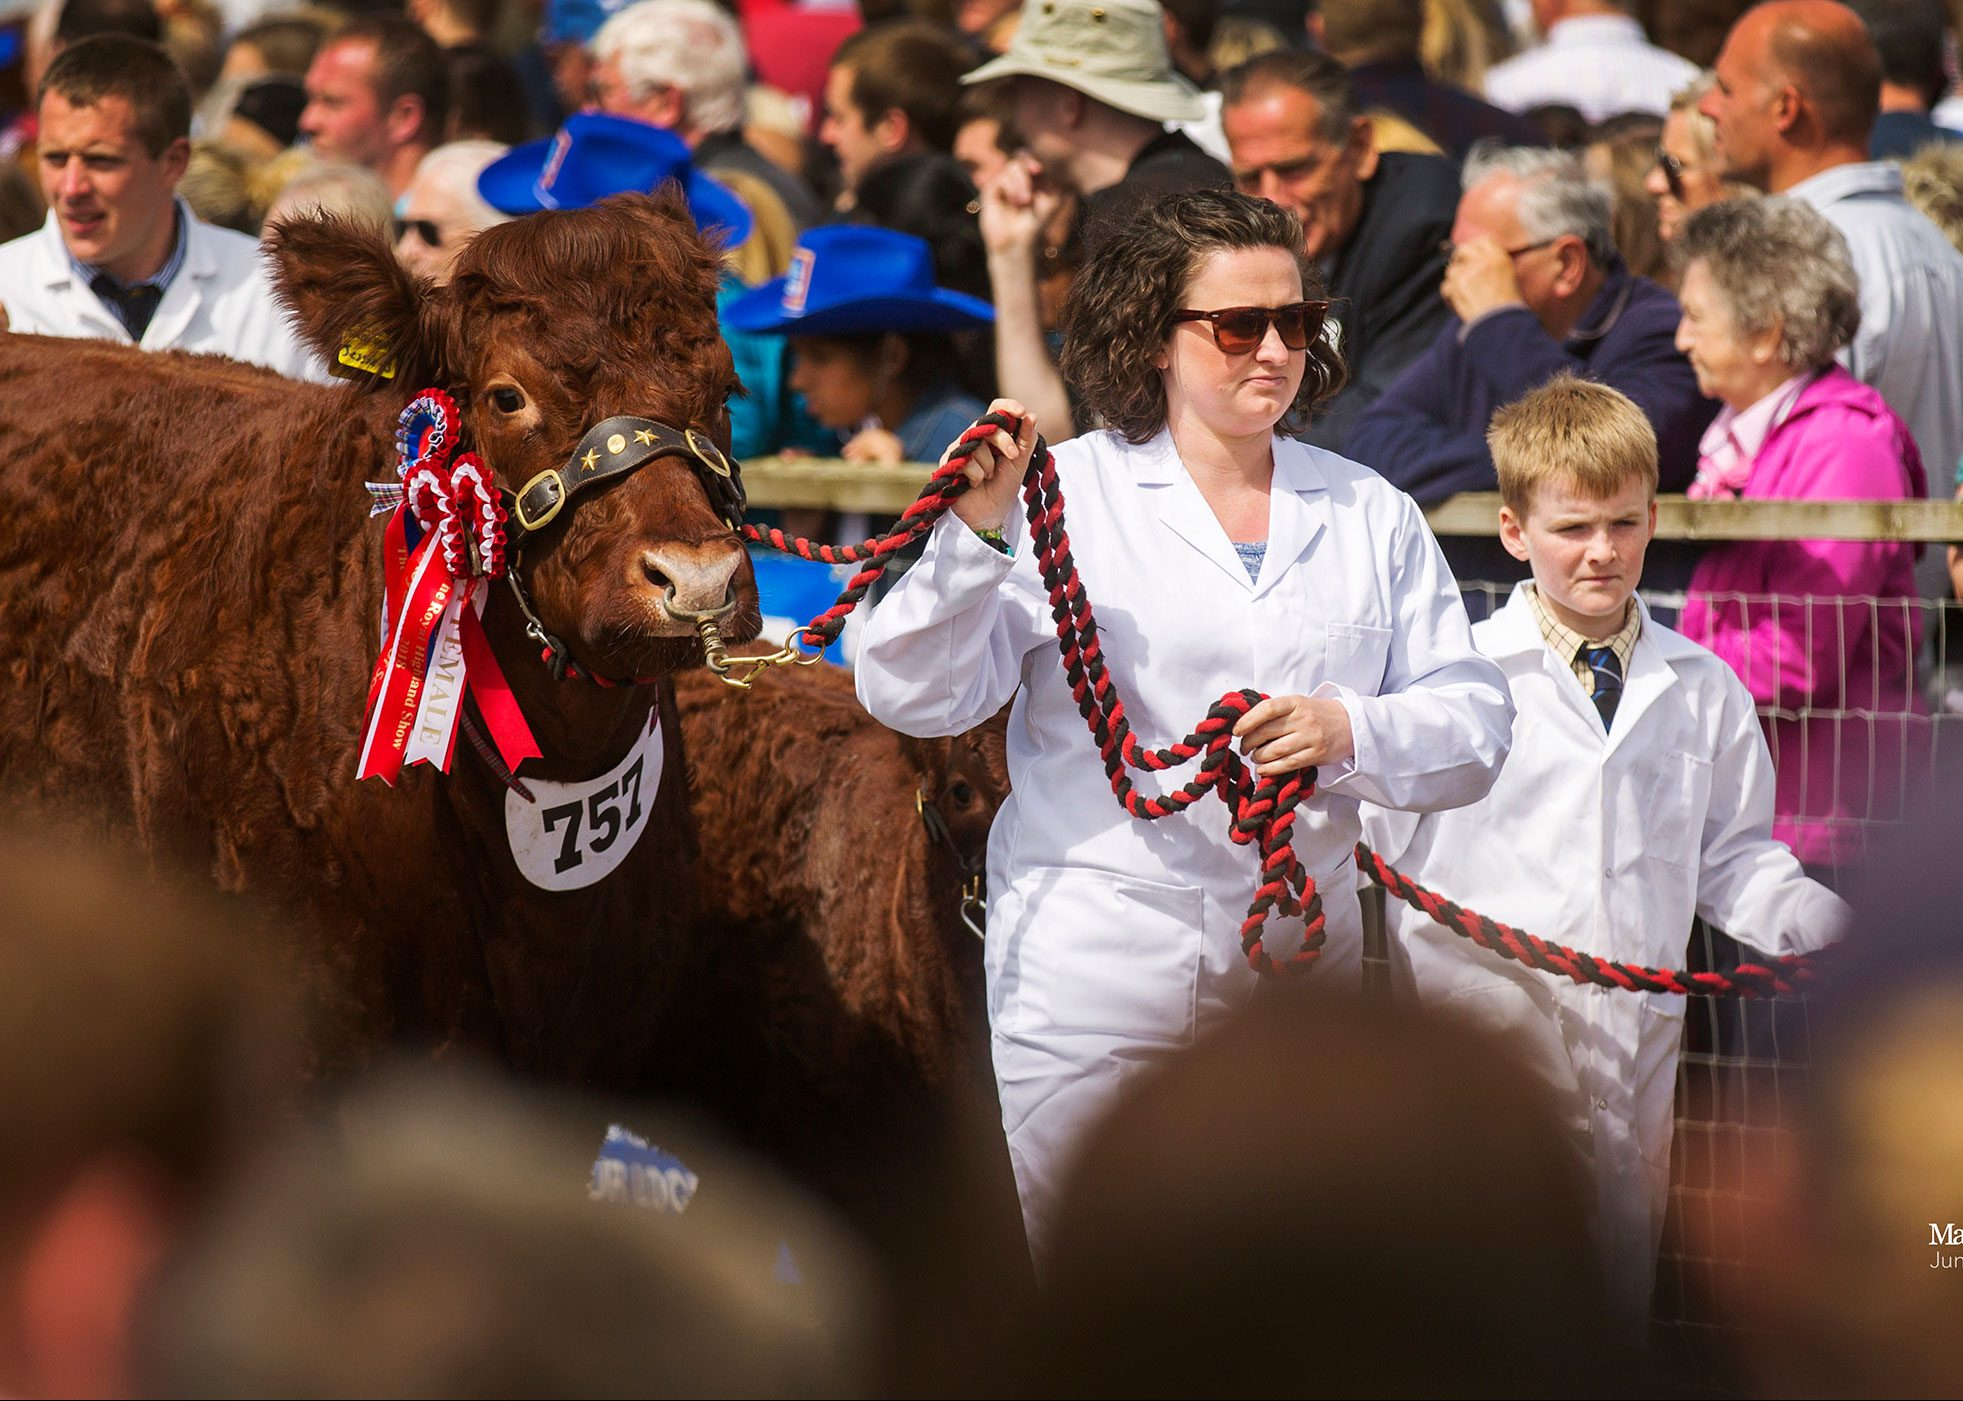 Read more about the article 2018 ROYAL HIGHLAND SHOW INGLISTON